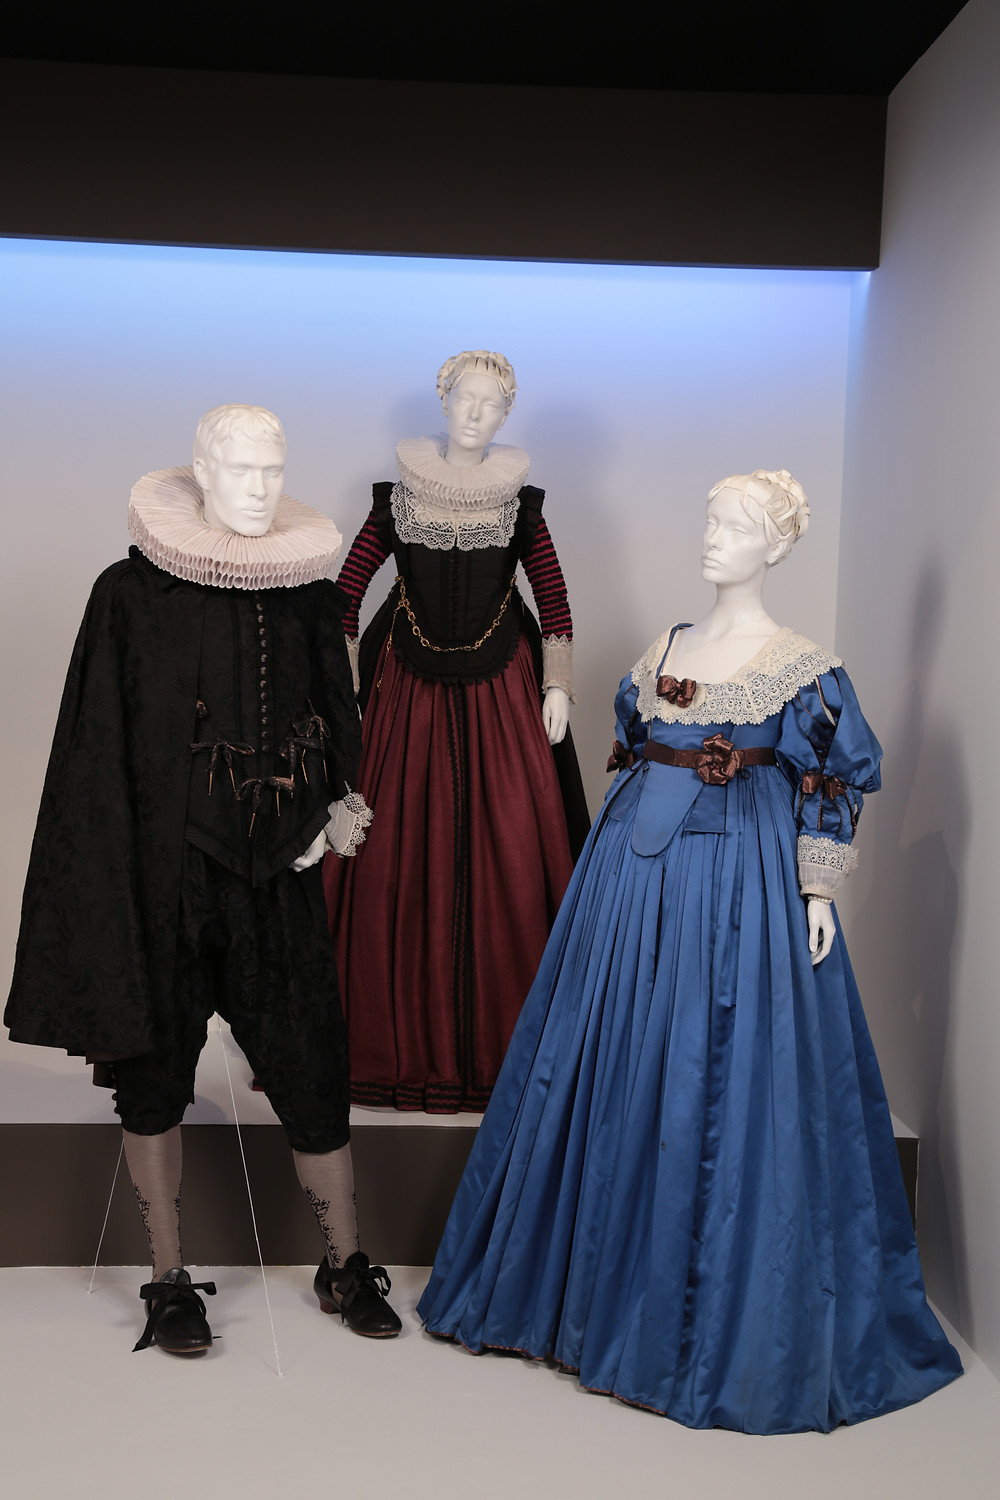 """Tulip Fever"" costumes by Michael O'Connor. (L to R) Costumes worn by actors: Christoph Waltz as Cornelis Sandvoort, Alicia Vikander as Sophia Sandvoort, Alicia Vikander as Sophia Sandvoort"